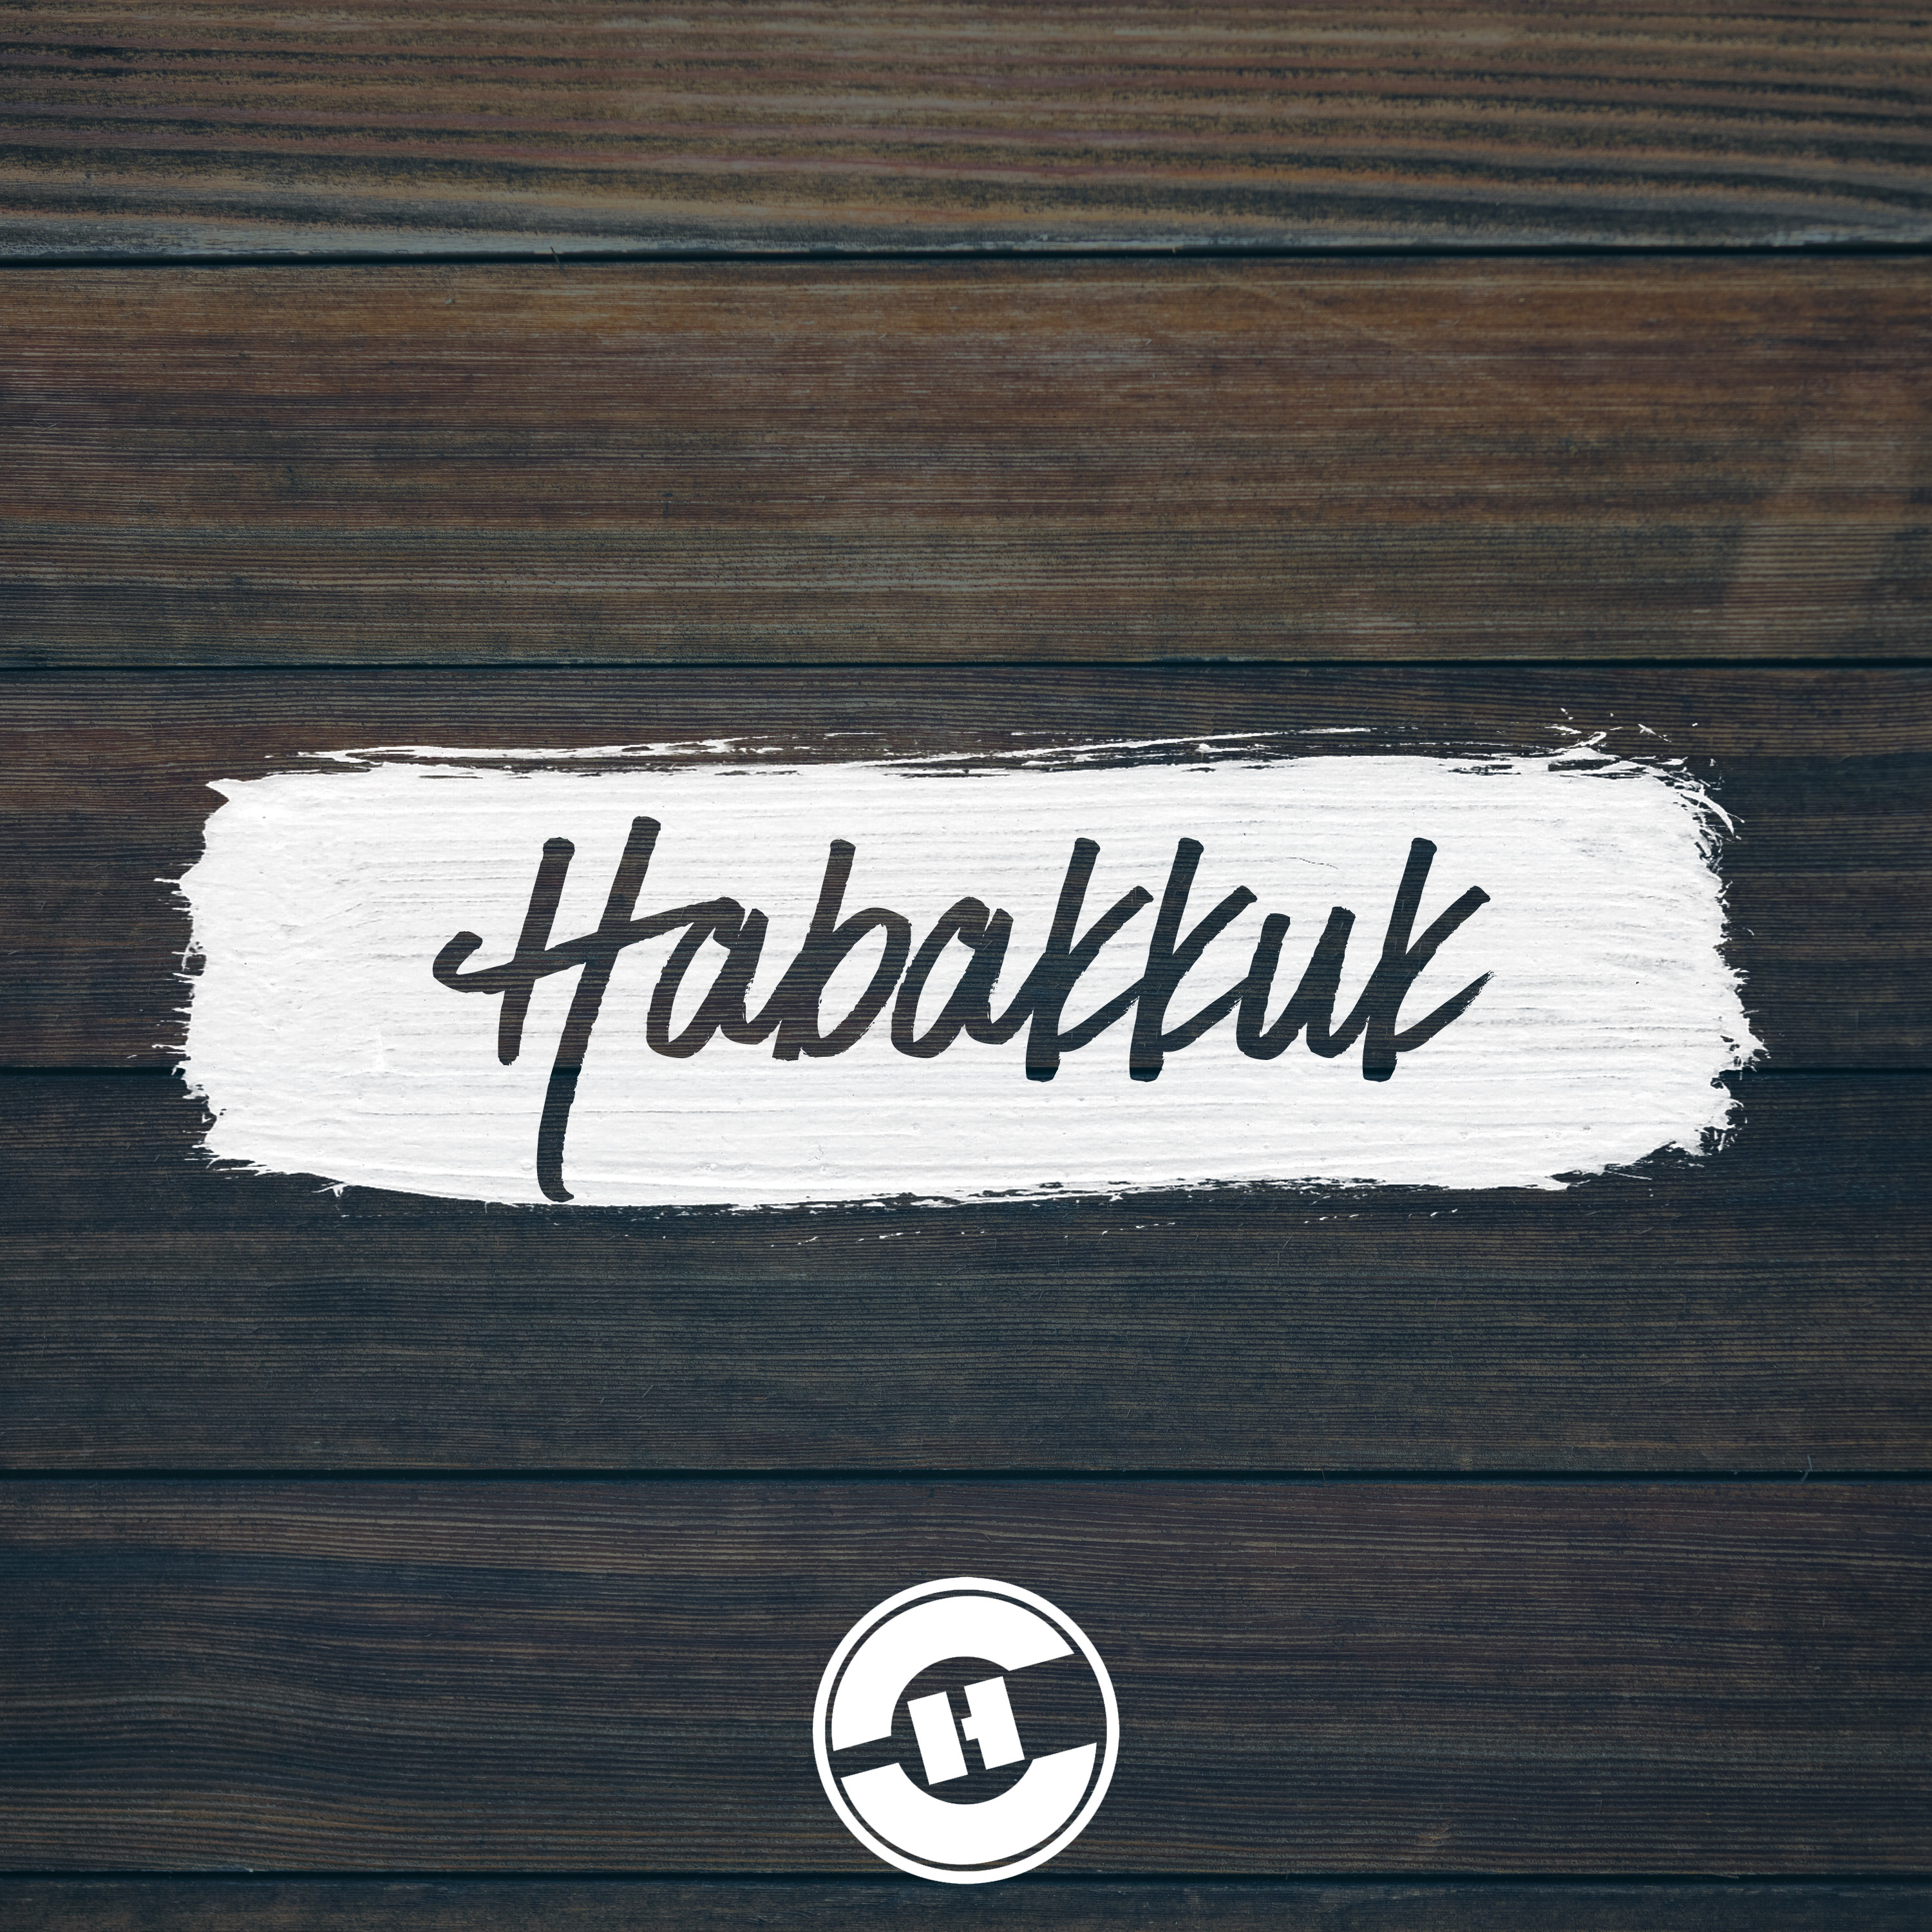 Habakkuk Podcast